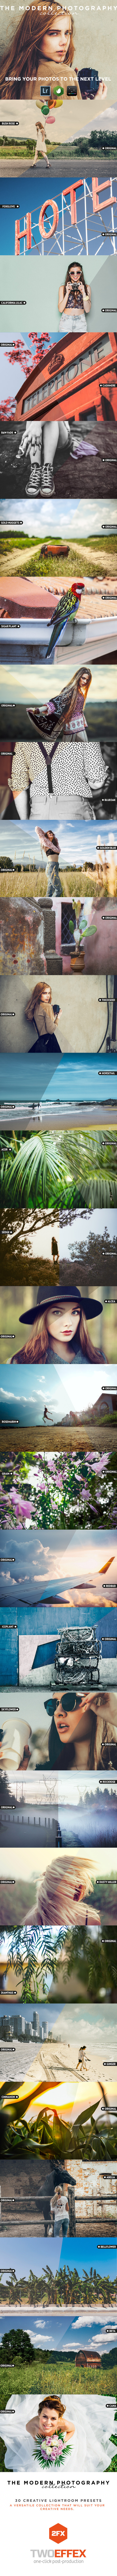 The Modern Photography - Lightroom presets - Portrait Lightroom Presets